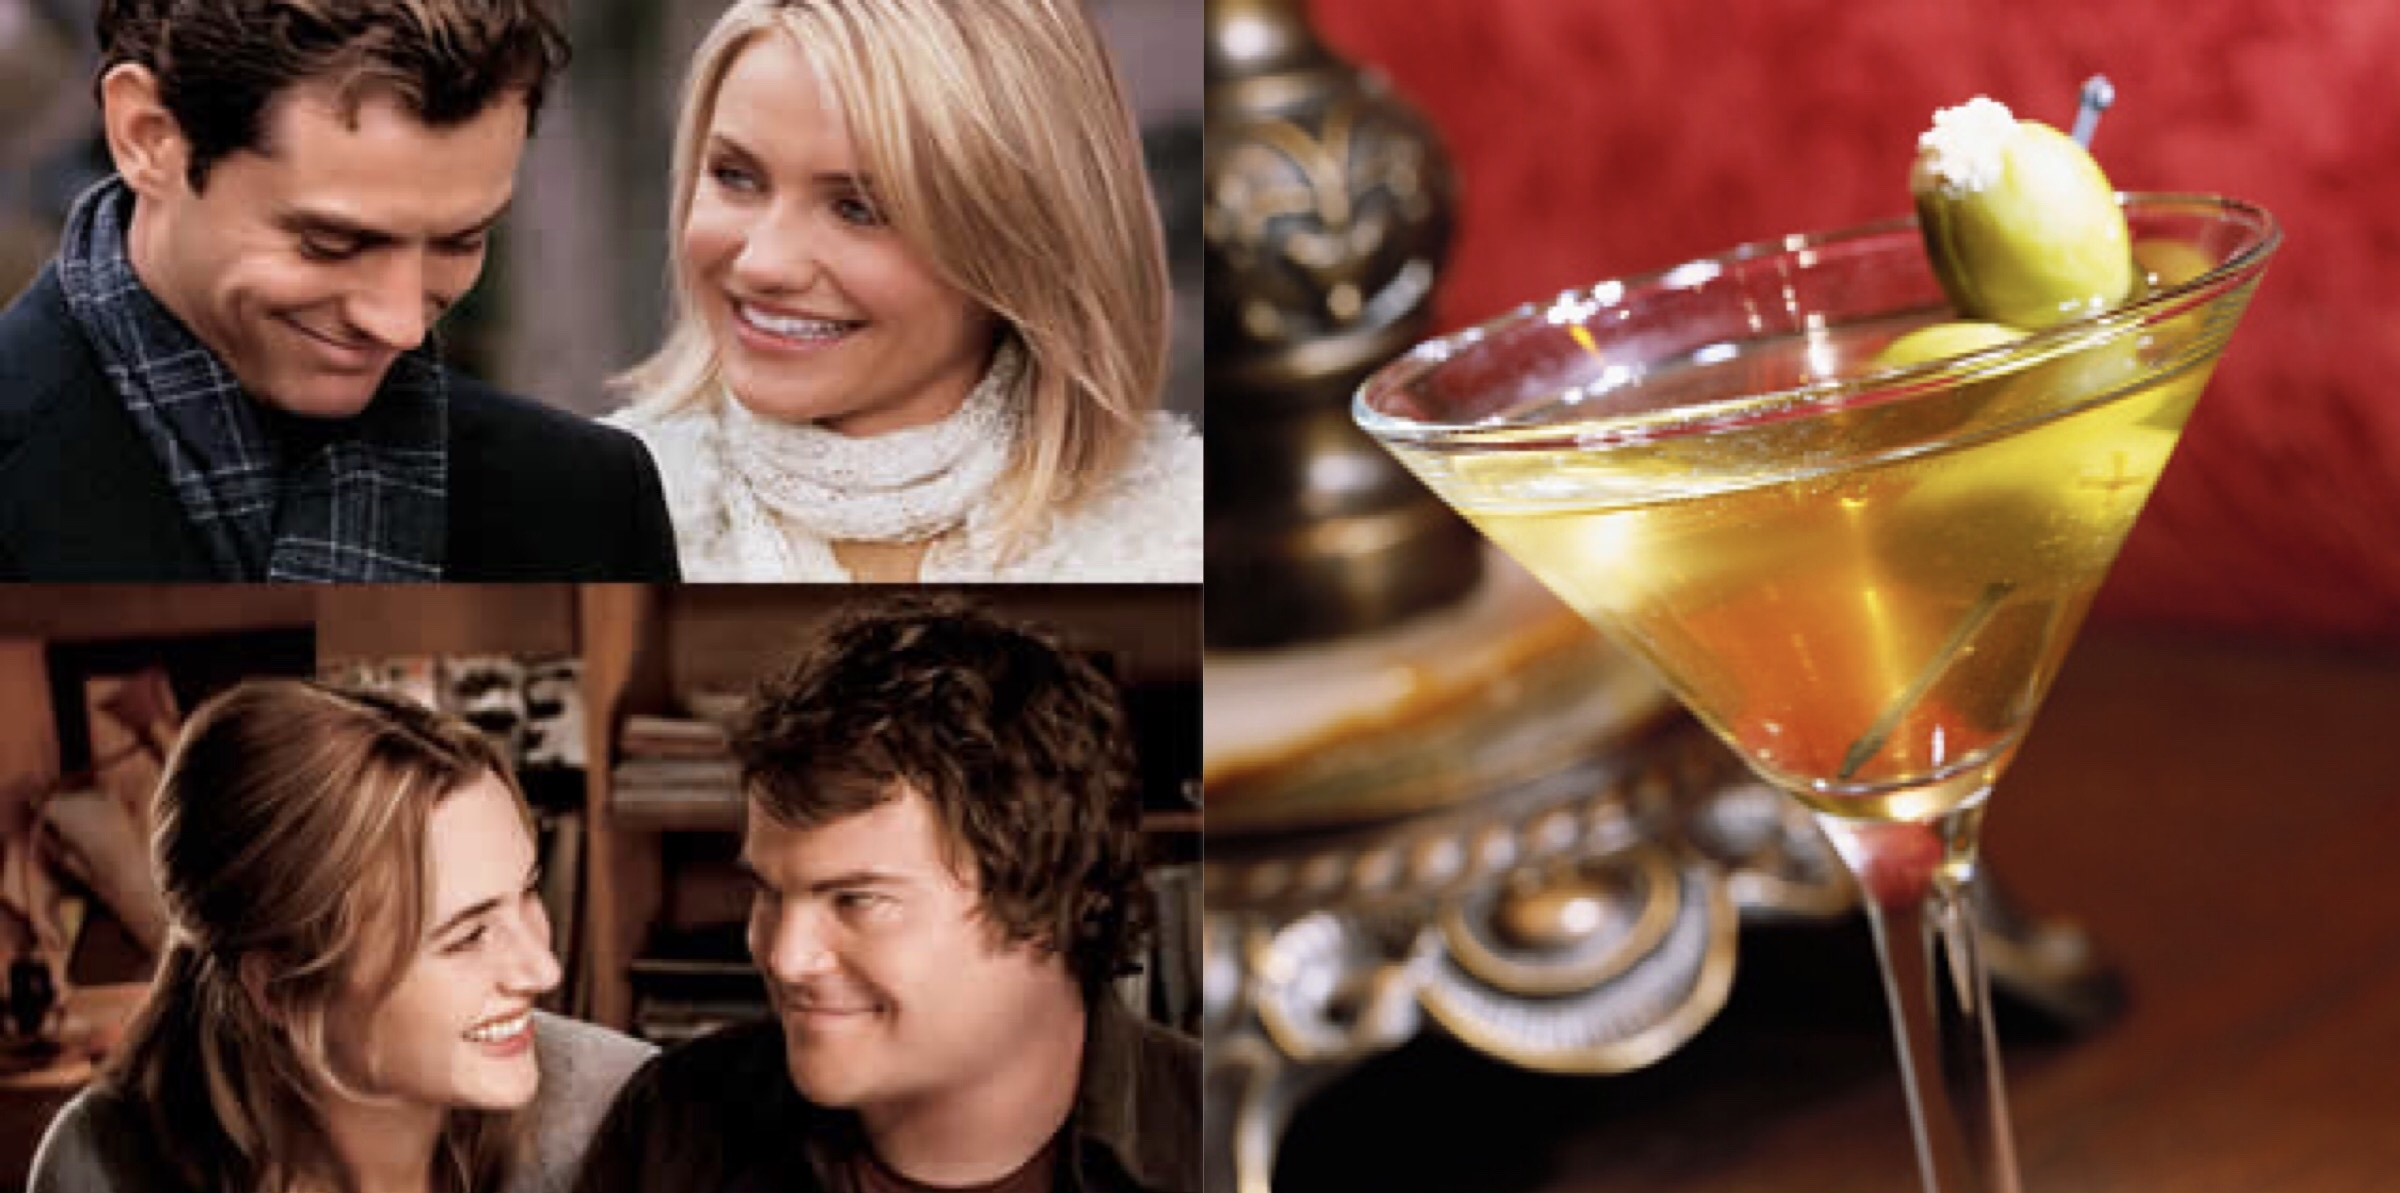 'The Holiday' and a Dirty Martini